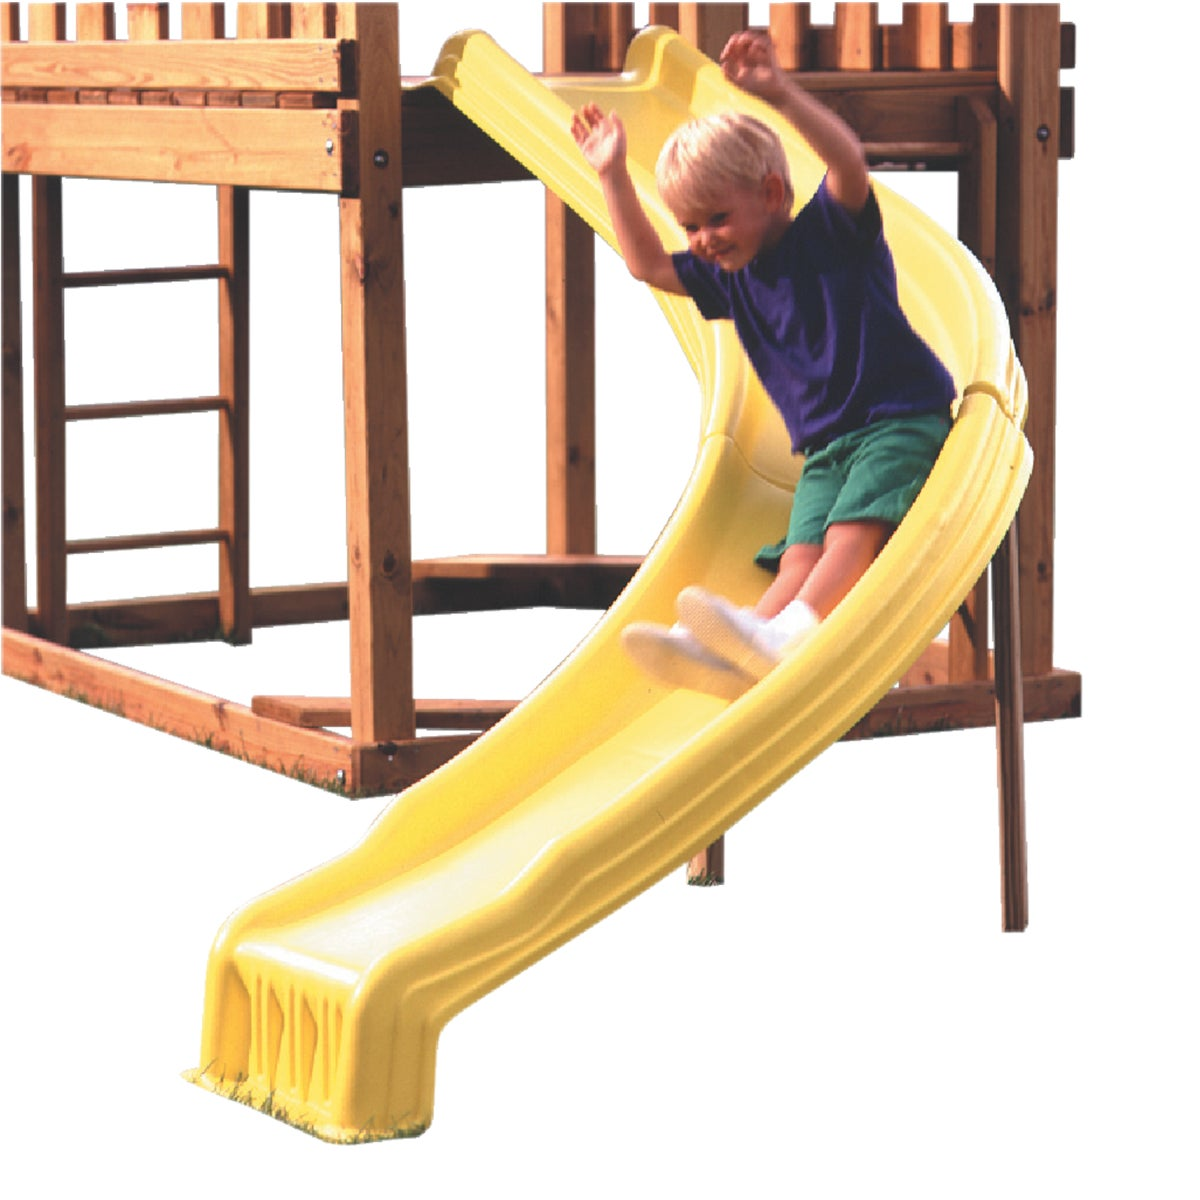 YELLOW SIDE WINDER SLIDE